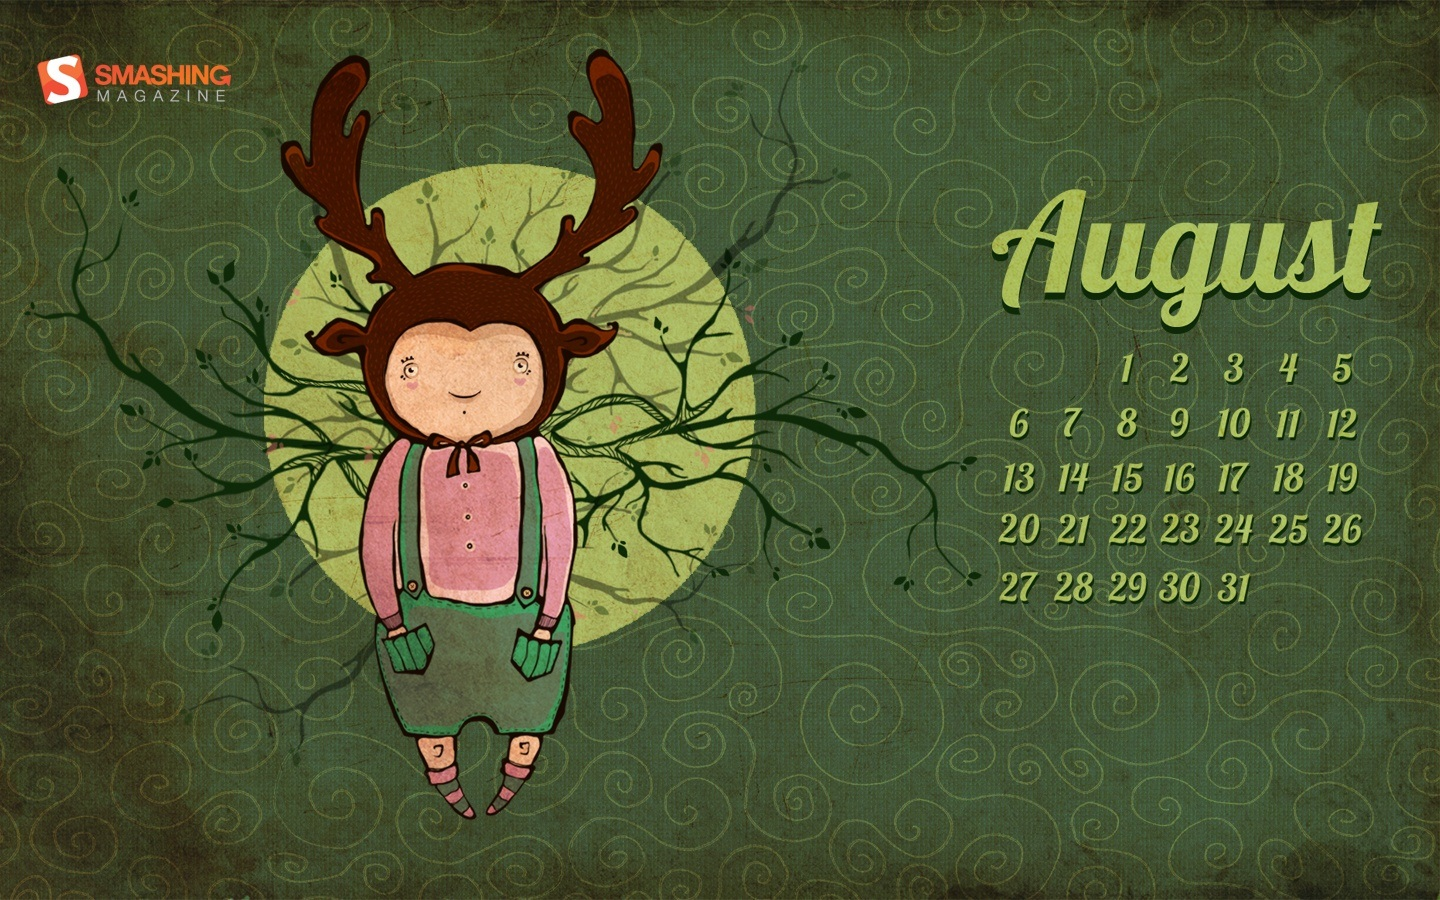 In January Calendar Wallpaper 31518